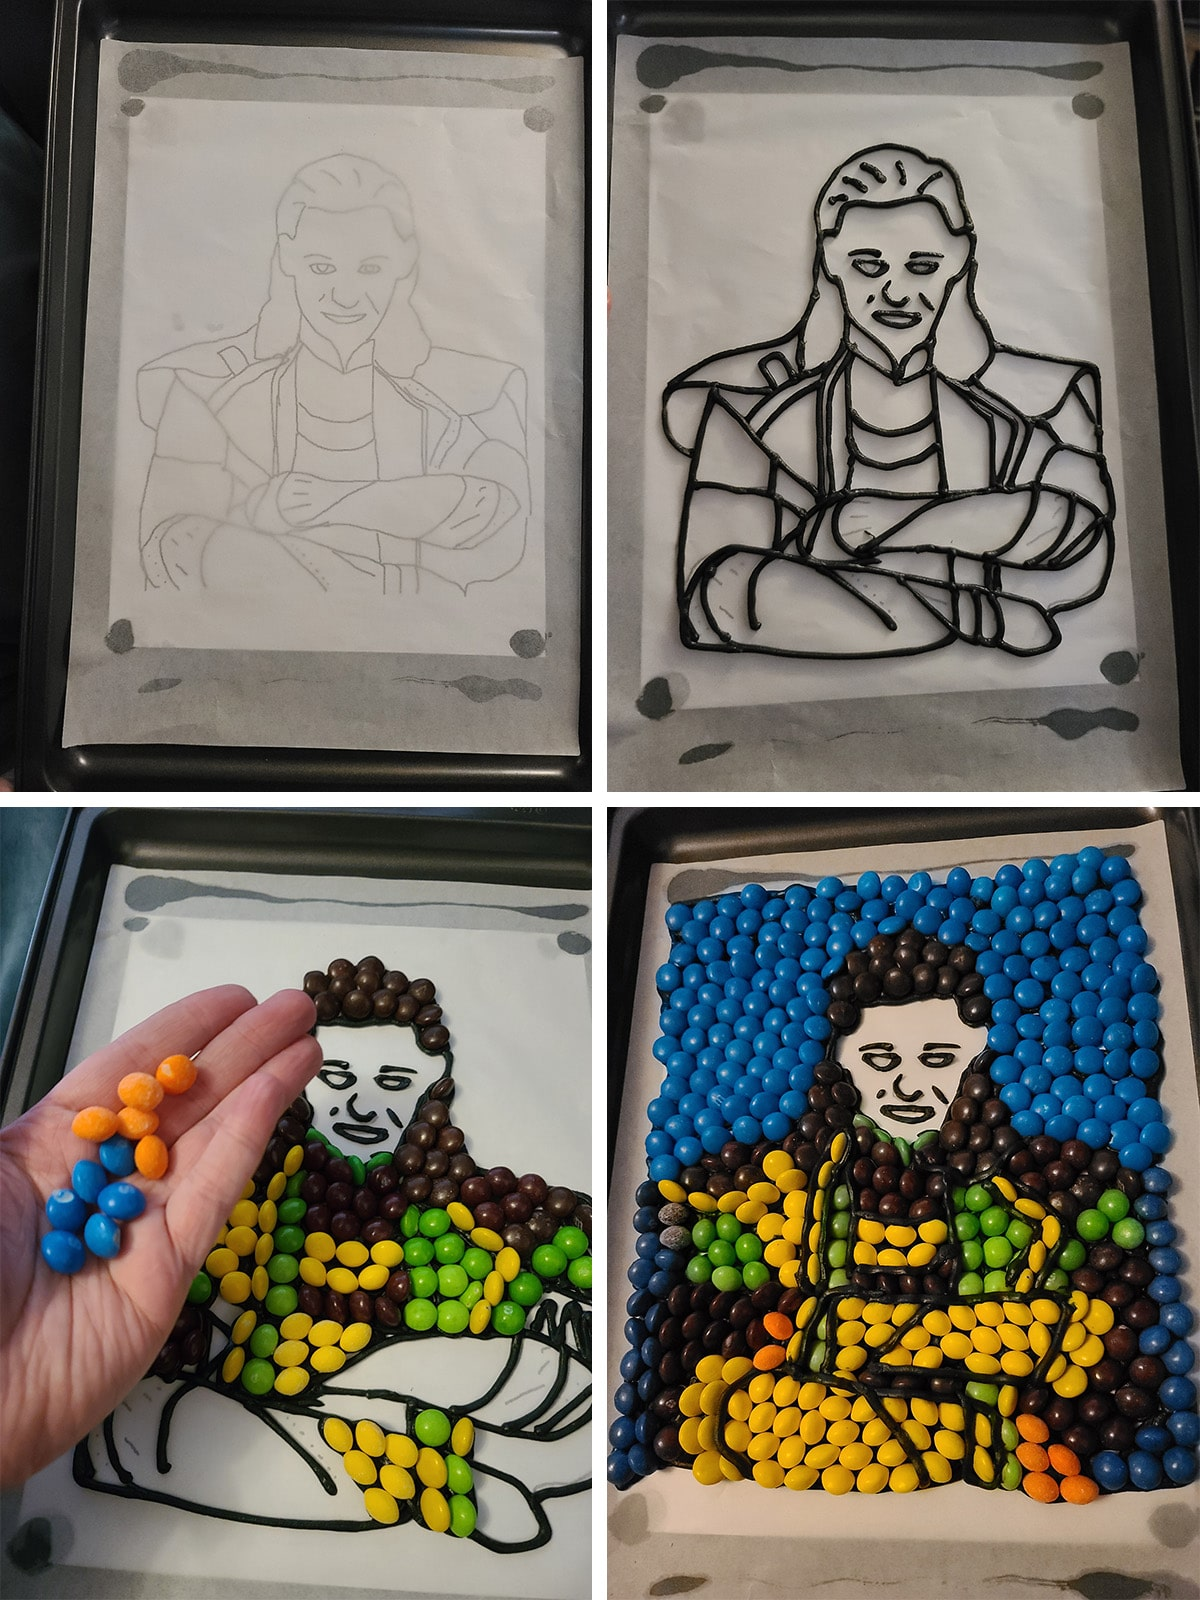 A 4 part progression image of the Skittles Loki picture being made.